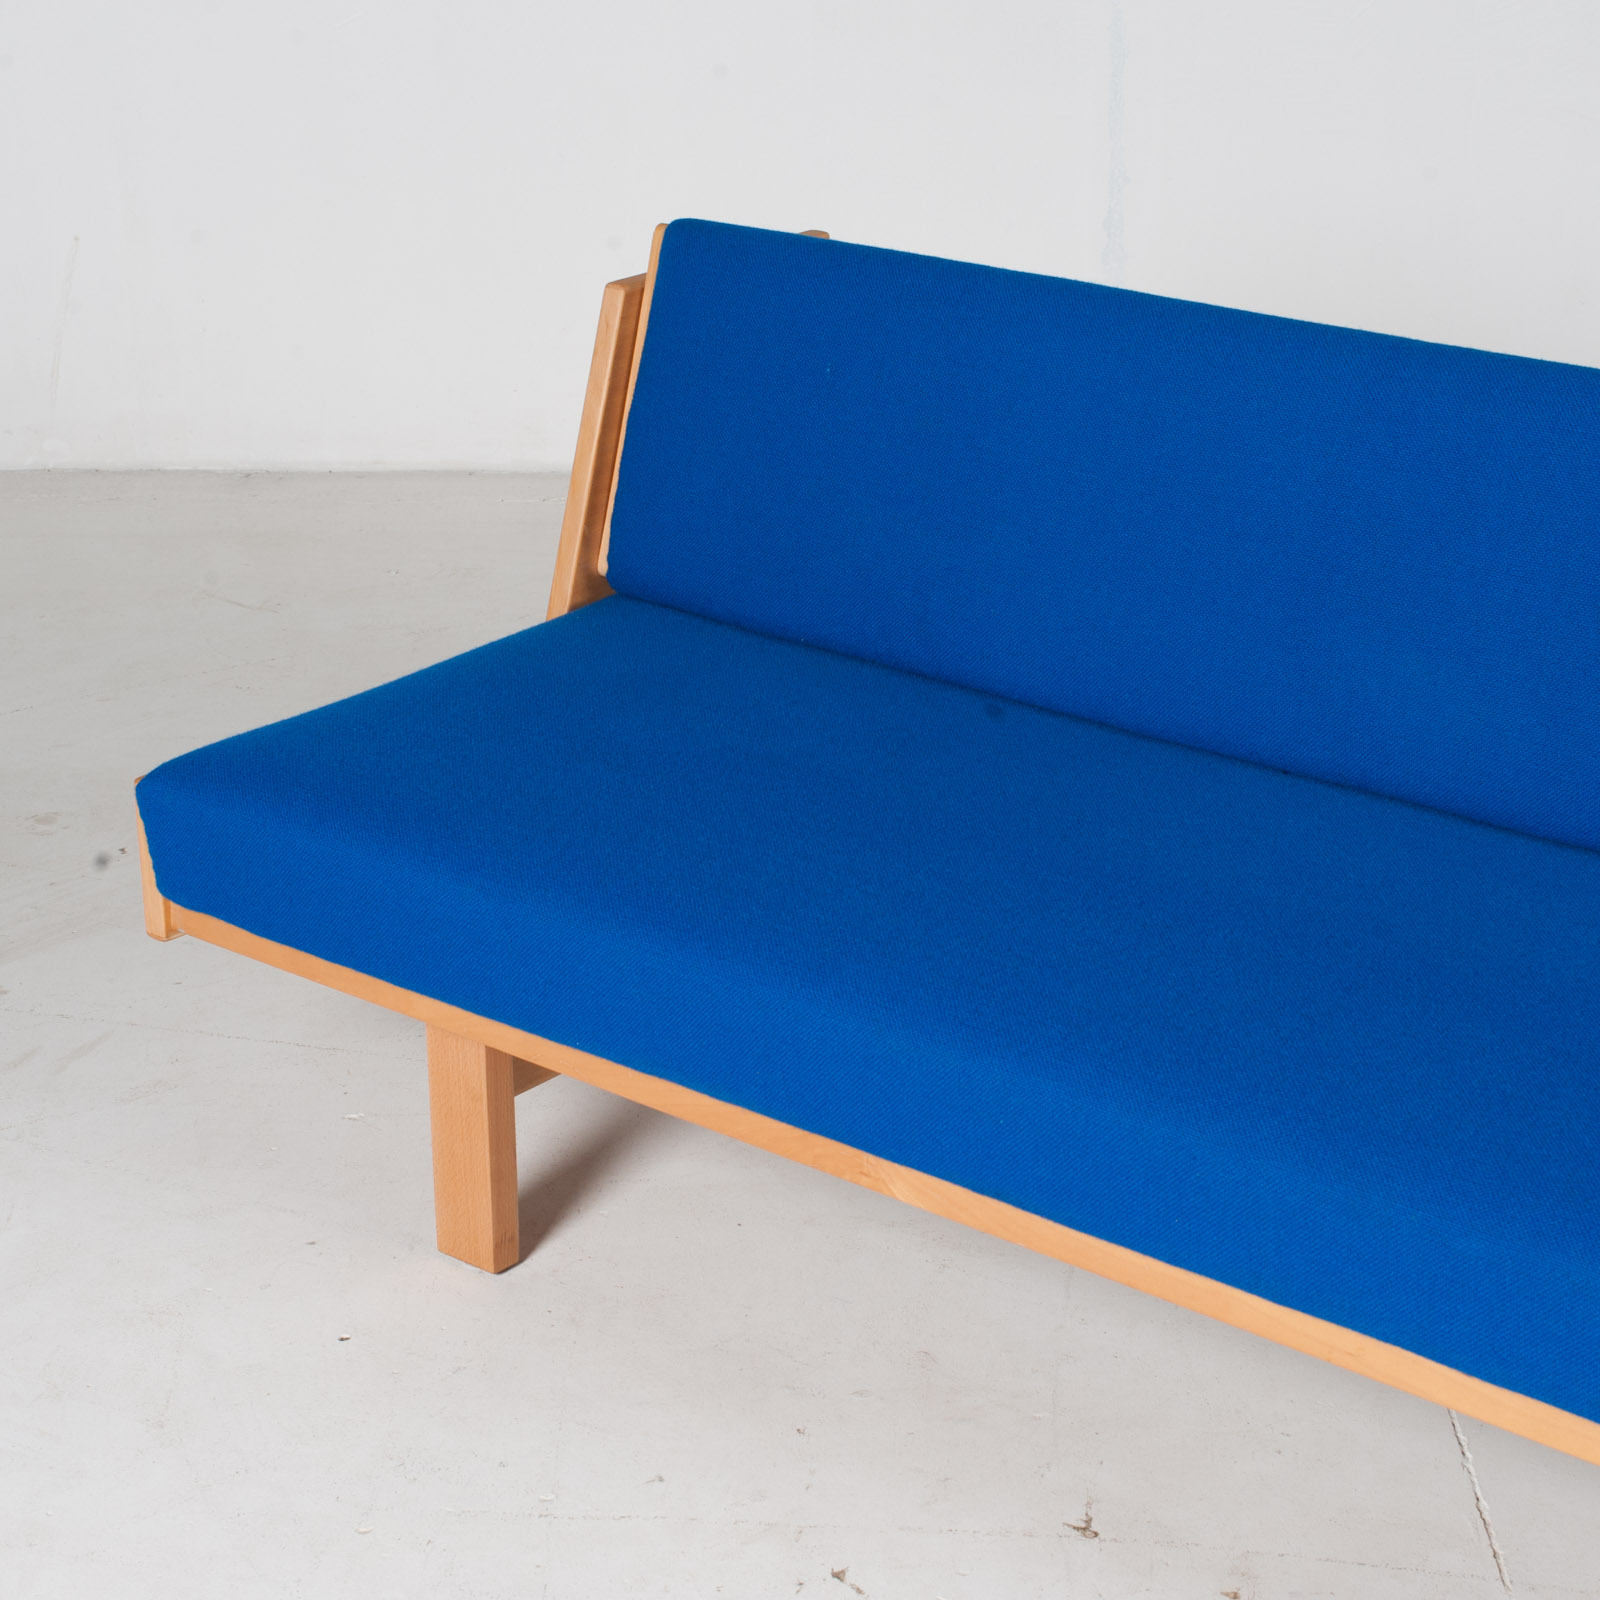 Ge 258 Daybed By Hans J. Wegner In Beech With Original Blue Upholstery For Getama, 1960s, Denmark8